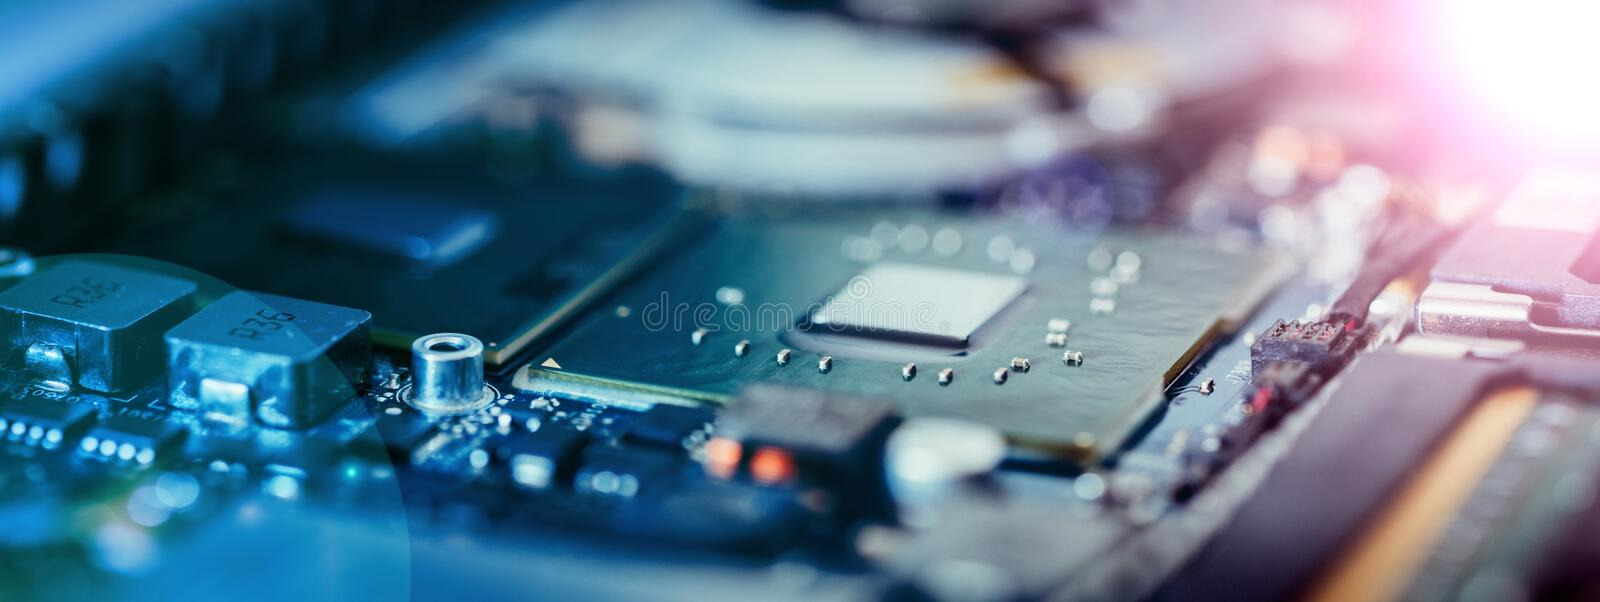 Computer Technology: Close up of a computer chip on a circuit board. Light effect. Computer chip on a circuit board, close up with light effect. Computer royalty free stock photos